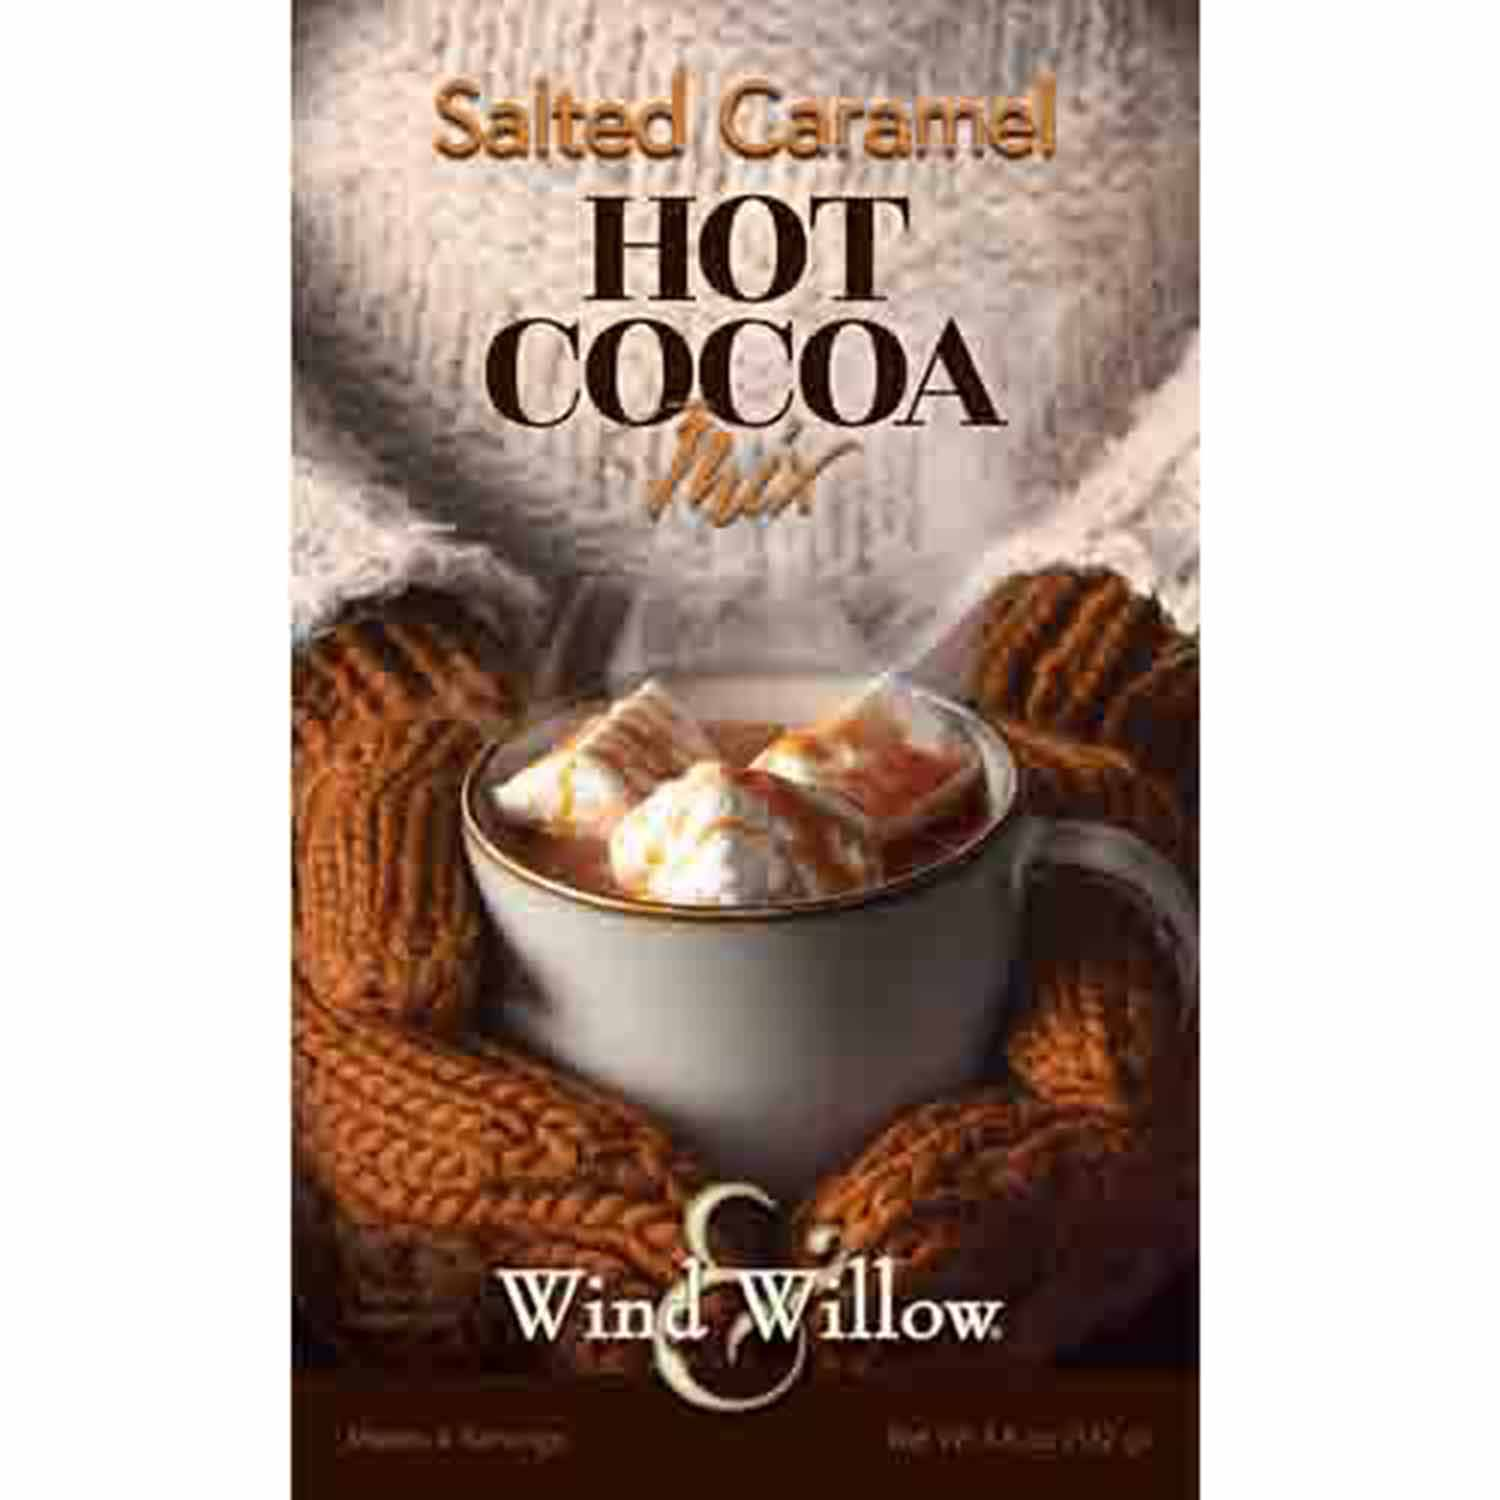 Salted Caramel Hot Cocoa Mix